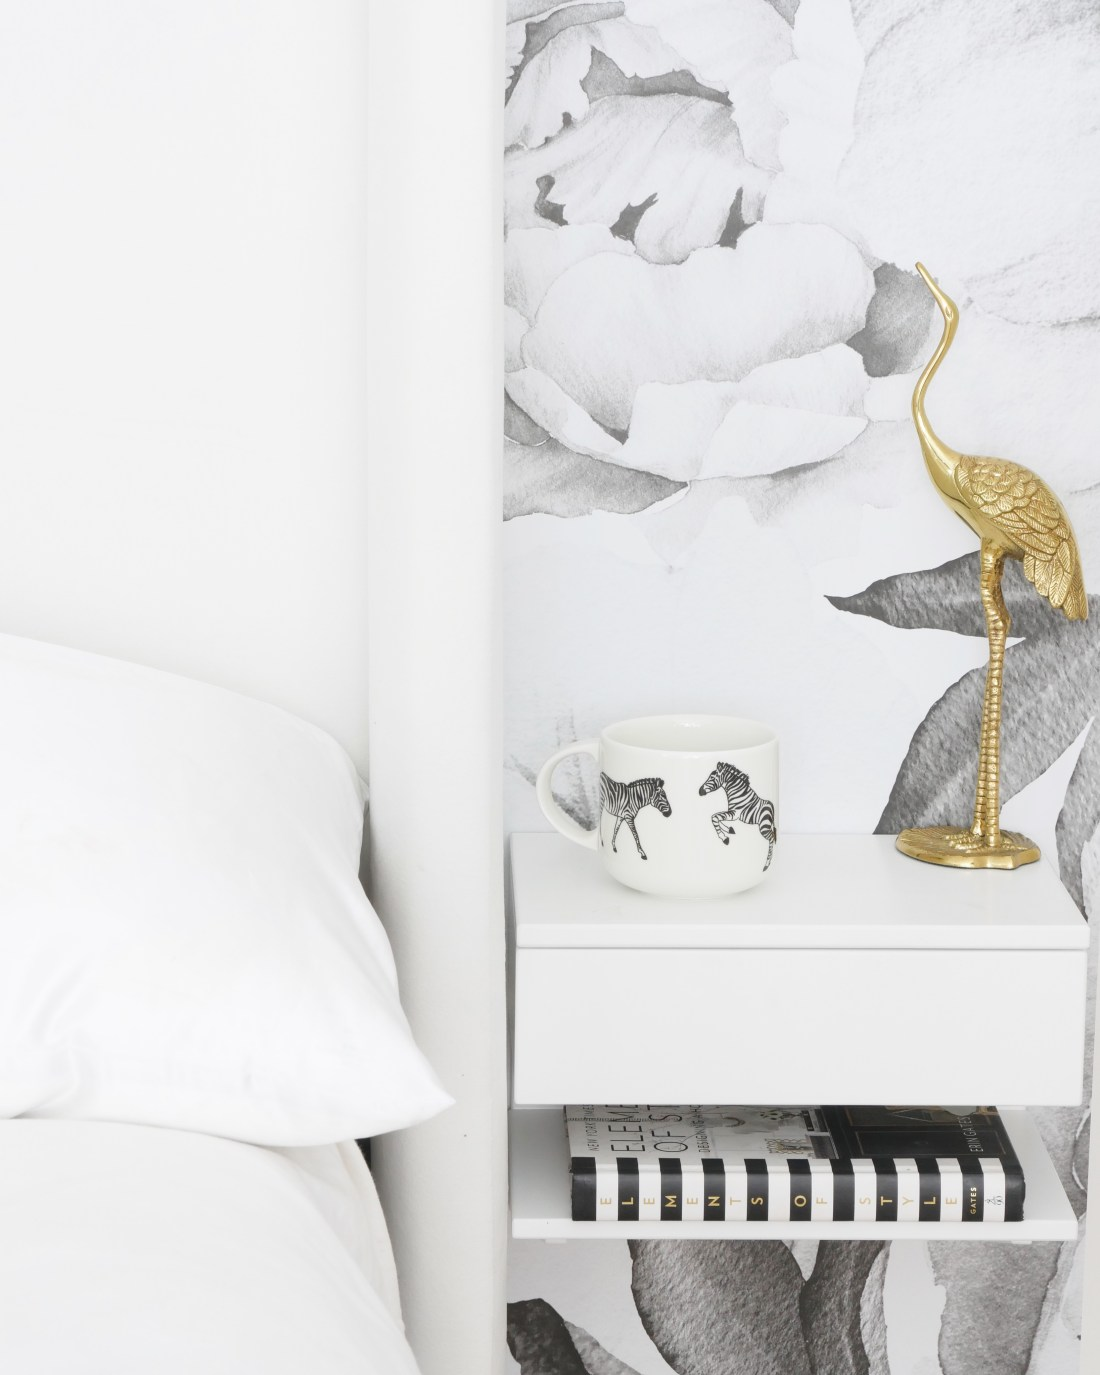 Live in a small space? Find it hard to find budget-friendly furniture that fits in your space? Have no fear! I found the most amazing the furniture brand that created furniture specifically for small spaces #studioapartmentideas #tinystudioapartmentideas #studioapartmentdecorating #decoratingonabudget #smallapartmentideas #smallbedroomideas #smallbedroomideasteens #smallbedroomideasforwomen